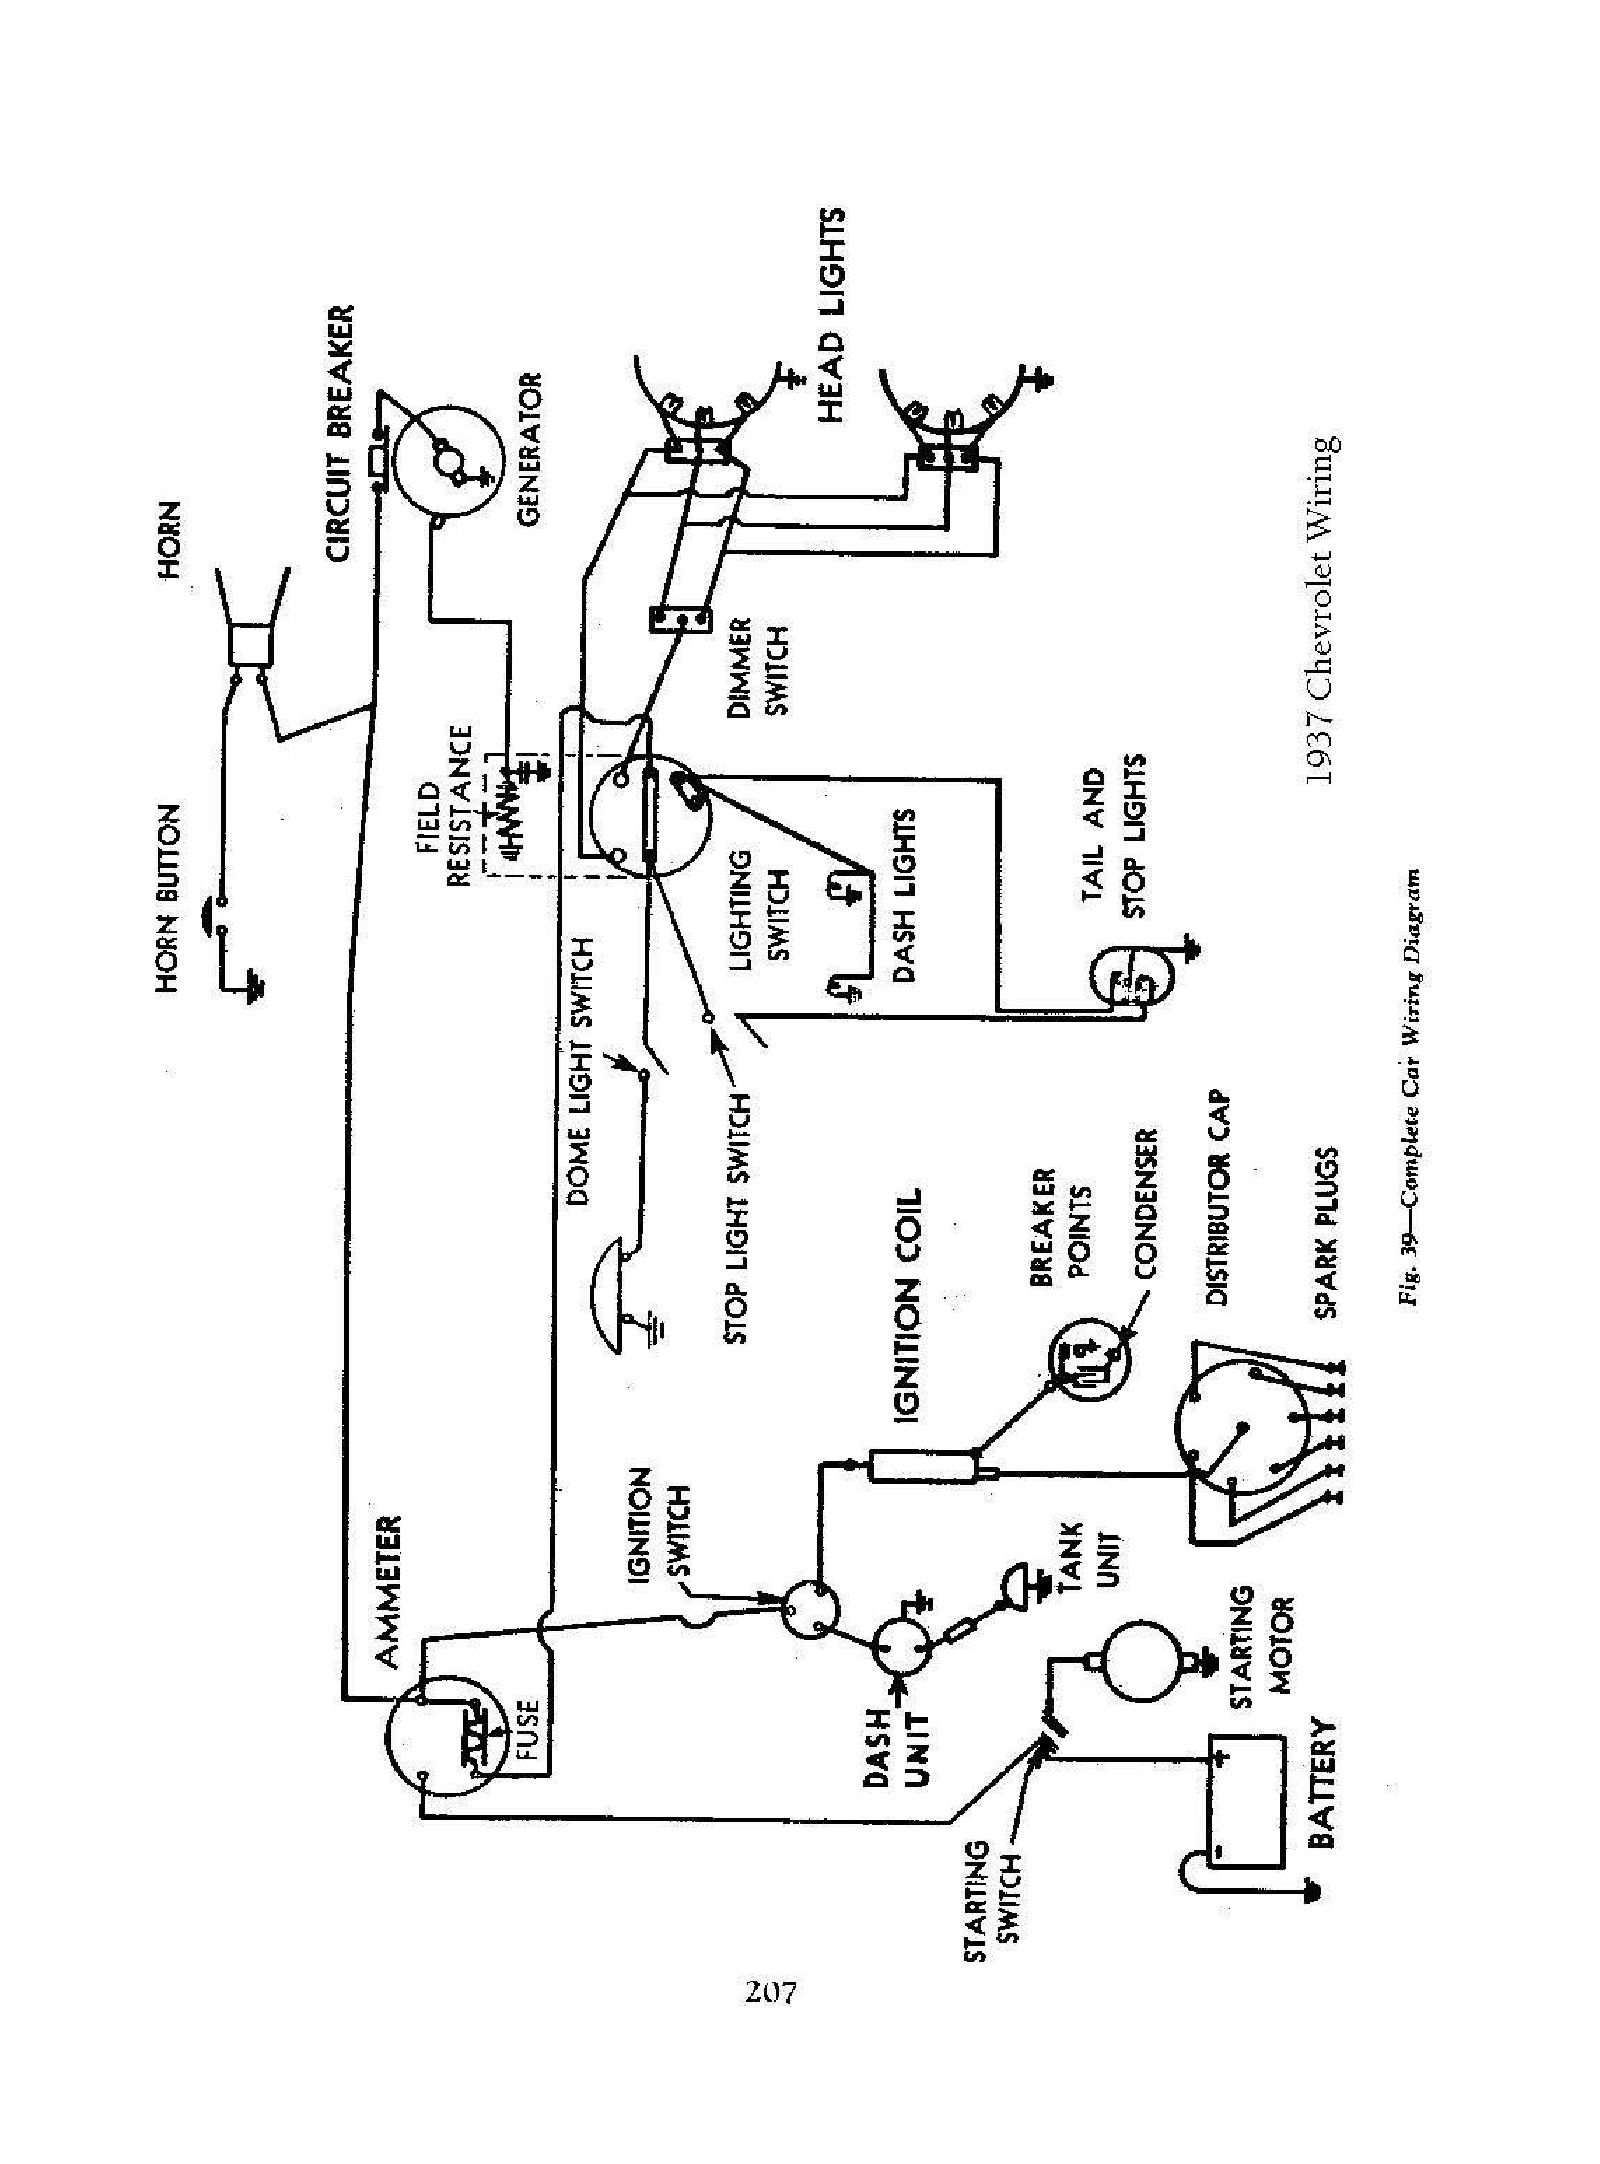 1955 ford generator wire diagram